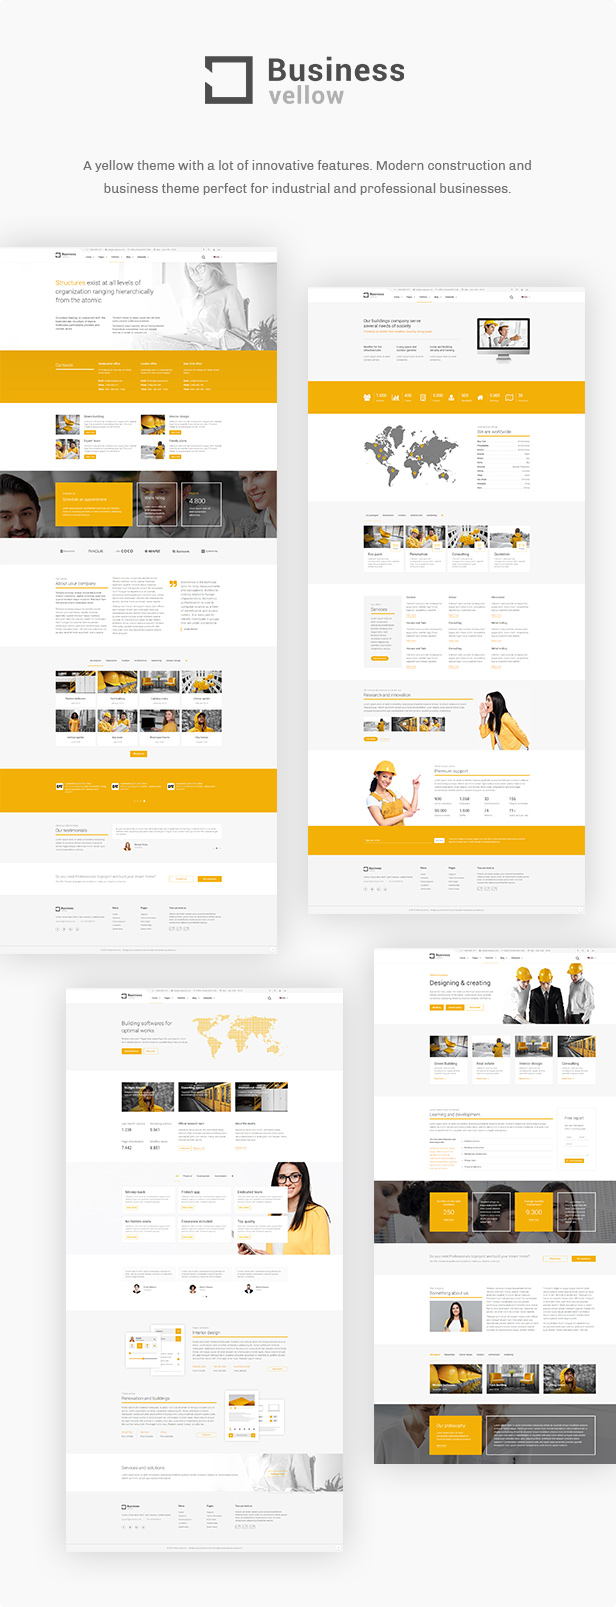 yellow business - construction theme for industrial businesses (business) Yellow Business – Construction Theme for Industrial Businesses (Business) preview full 1